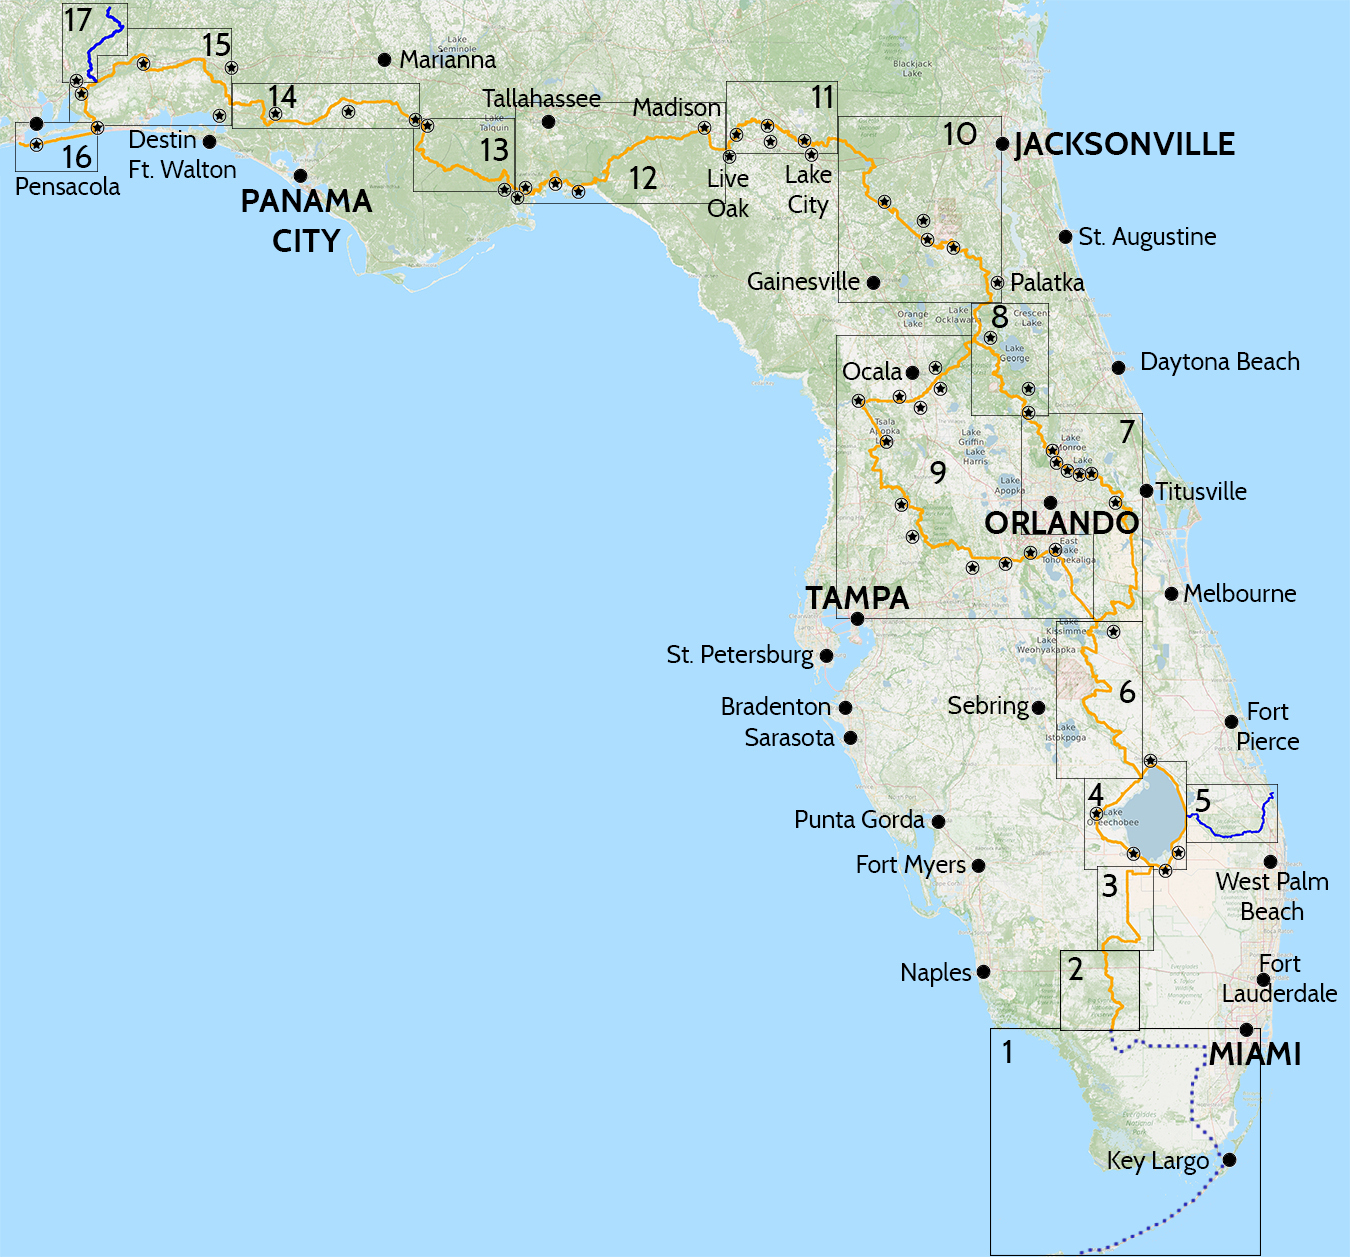 Florida Trail Hiking Guide | Florida Hikes! - Florida Trail Map